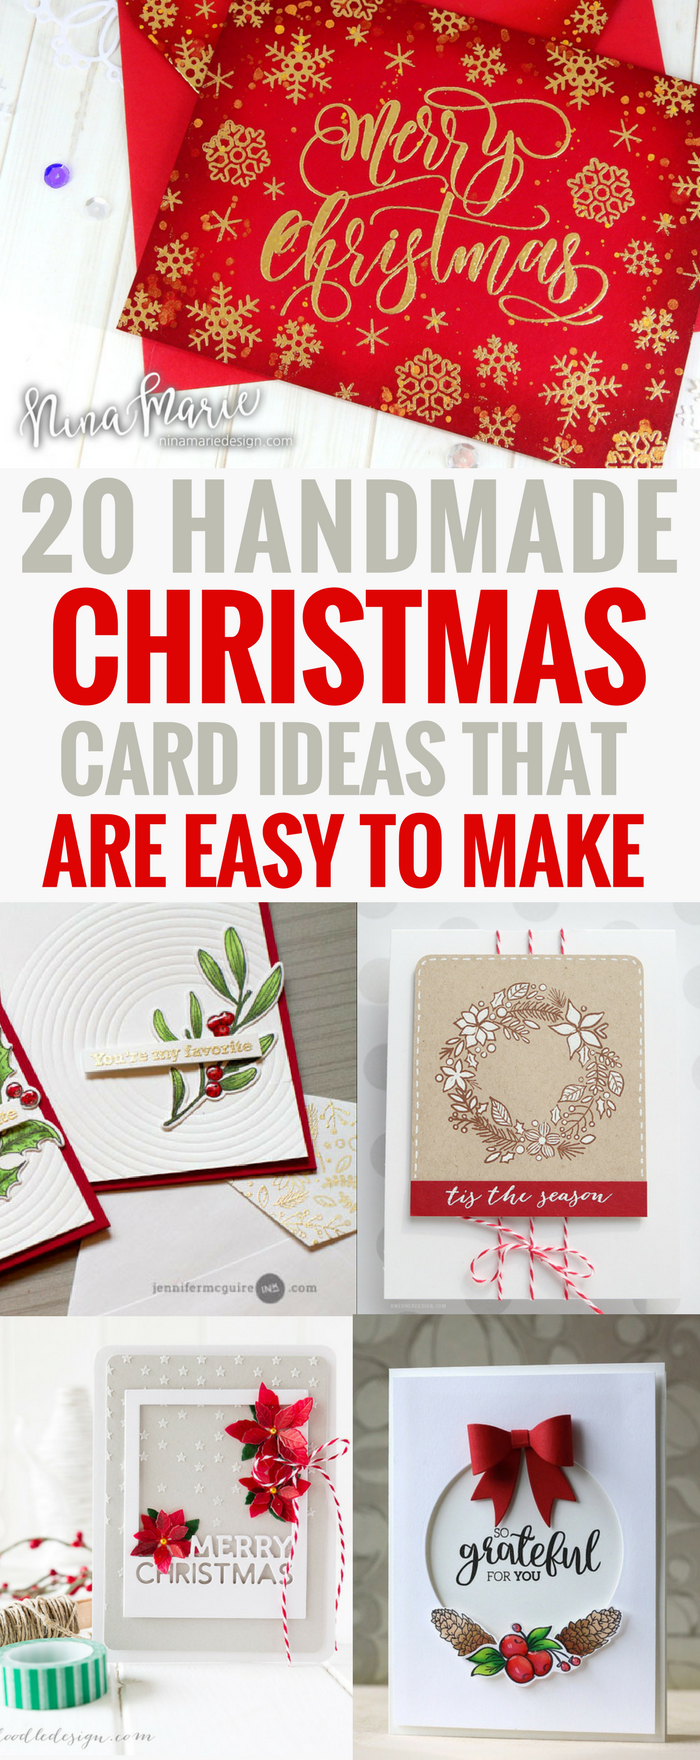 20 Gorgeous Handmade Christmas Cards Ideas That Are Easy. French Design Kitchen. Free Kitchen Cabinets Design Software. Kitchen Design Massachusetts. Kitchen Drawer Designs. Open Kitchen Designs For Small Kitchens. Colorado Kitchen Design. Design Of A Small Kitchen. Kitchen Table Islands Designs